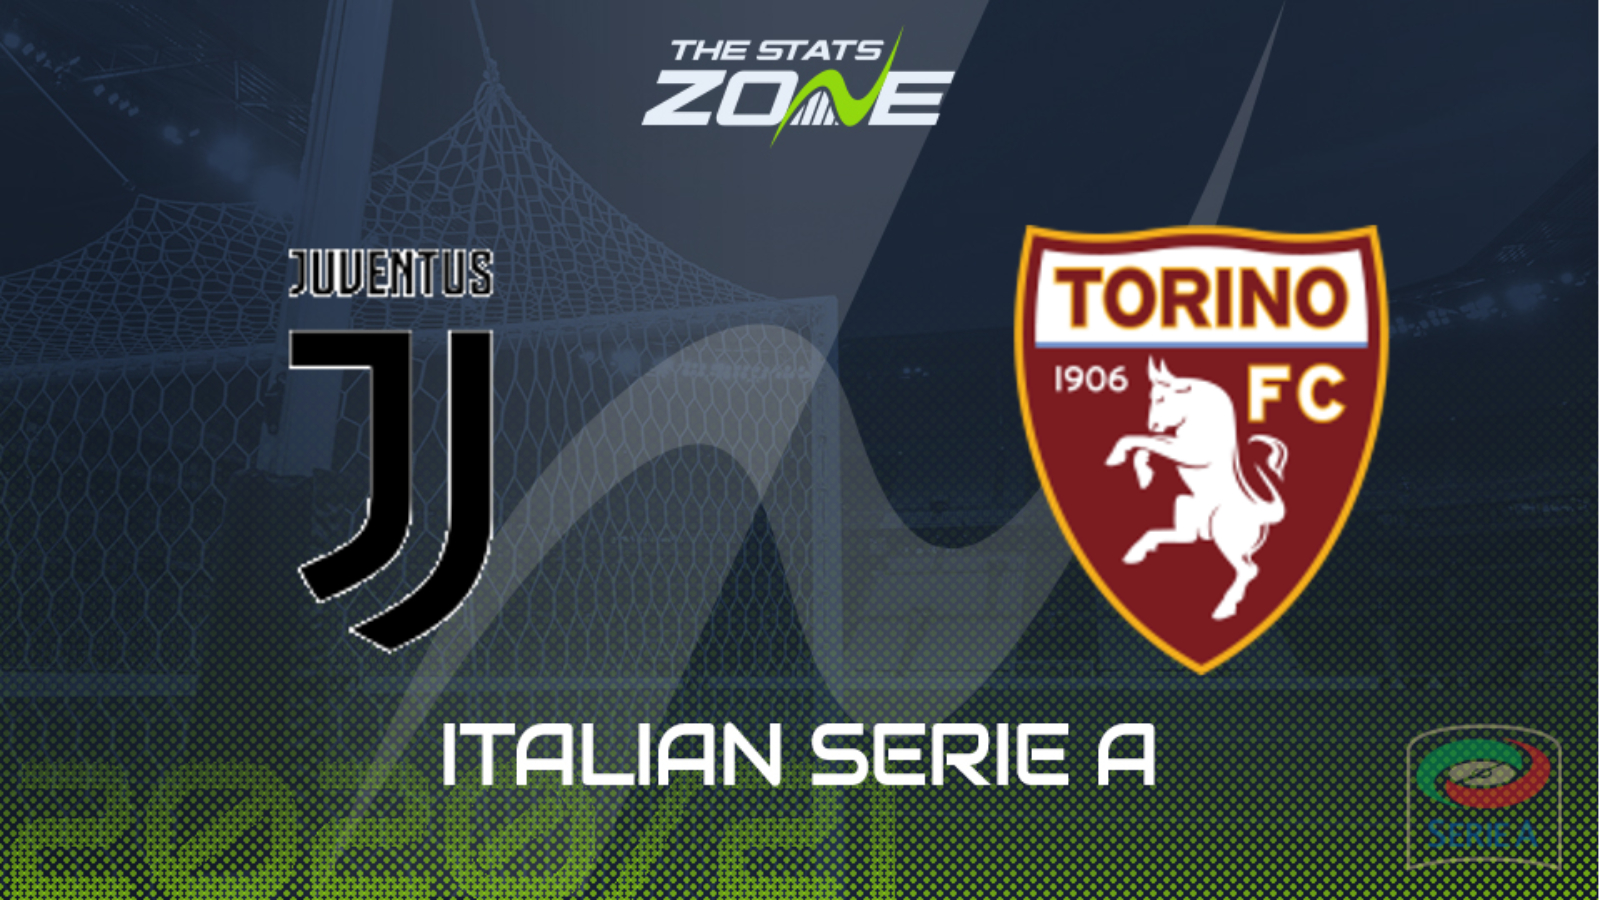 Juventus vs torino betting preview forex semi martingale system of betting